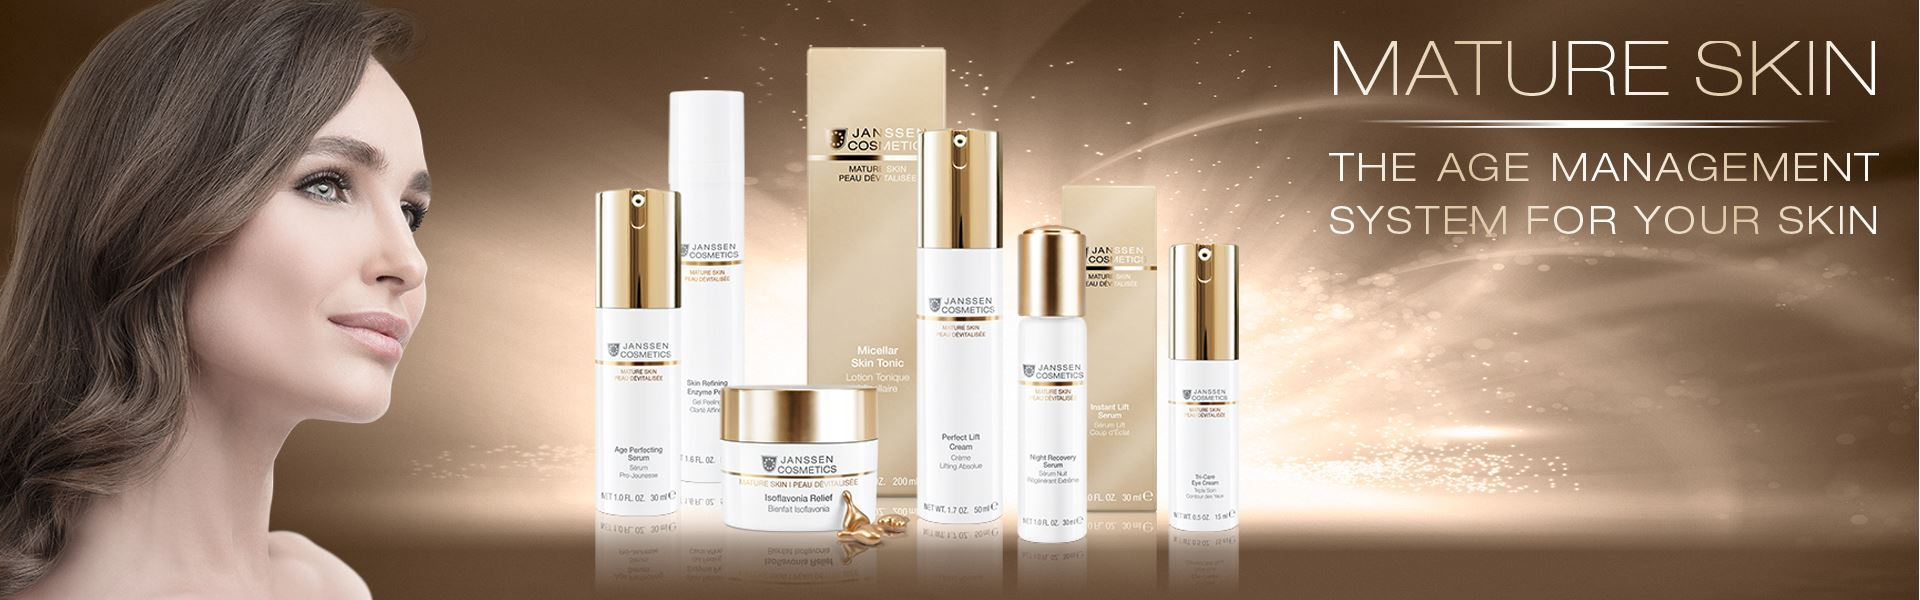 MATURE SKIN - the age management system for your skin